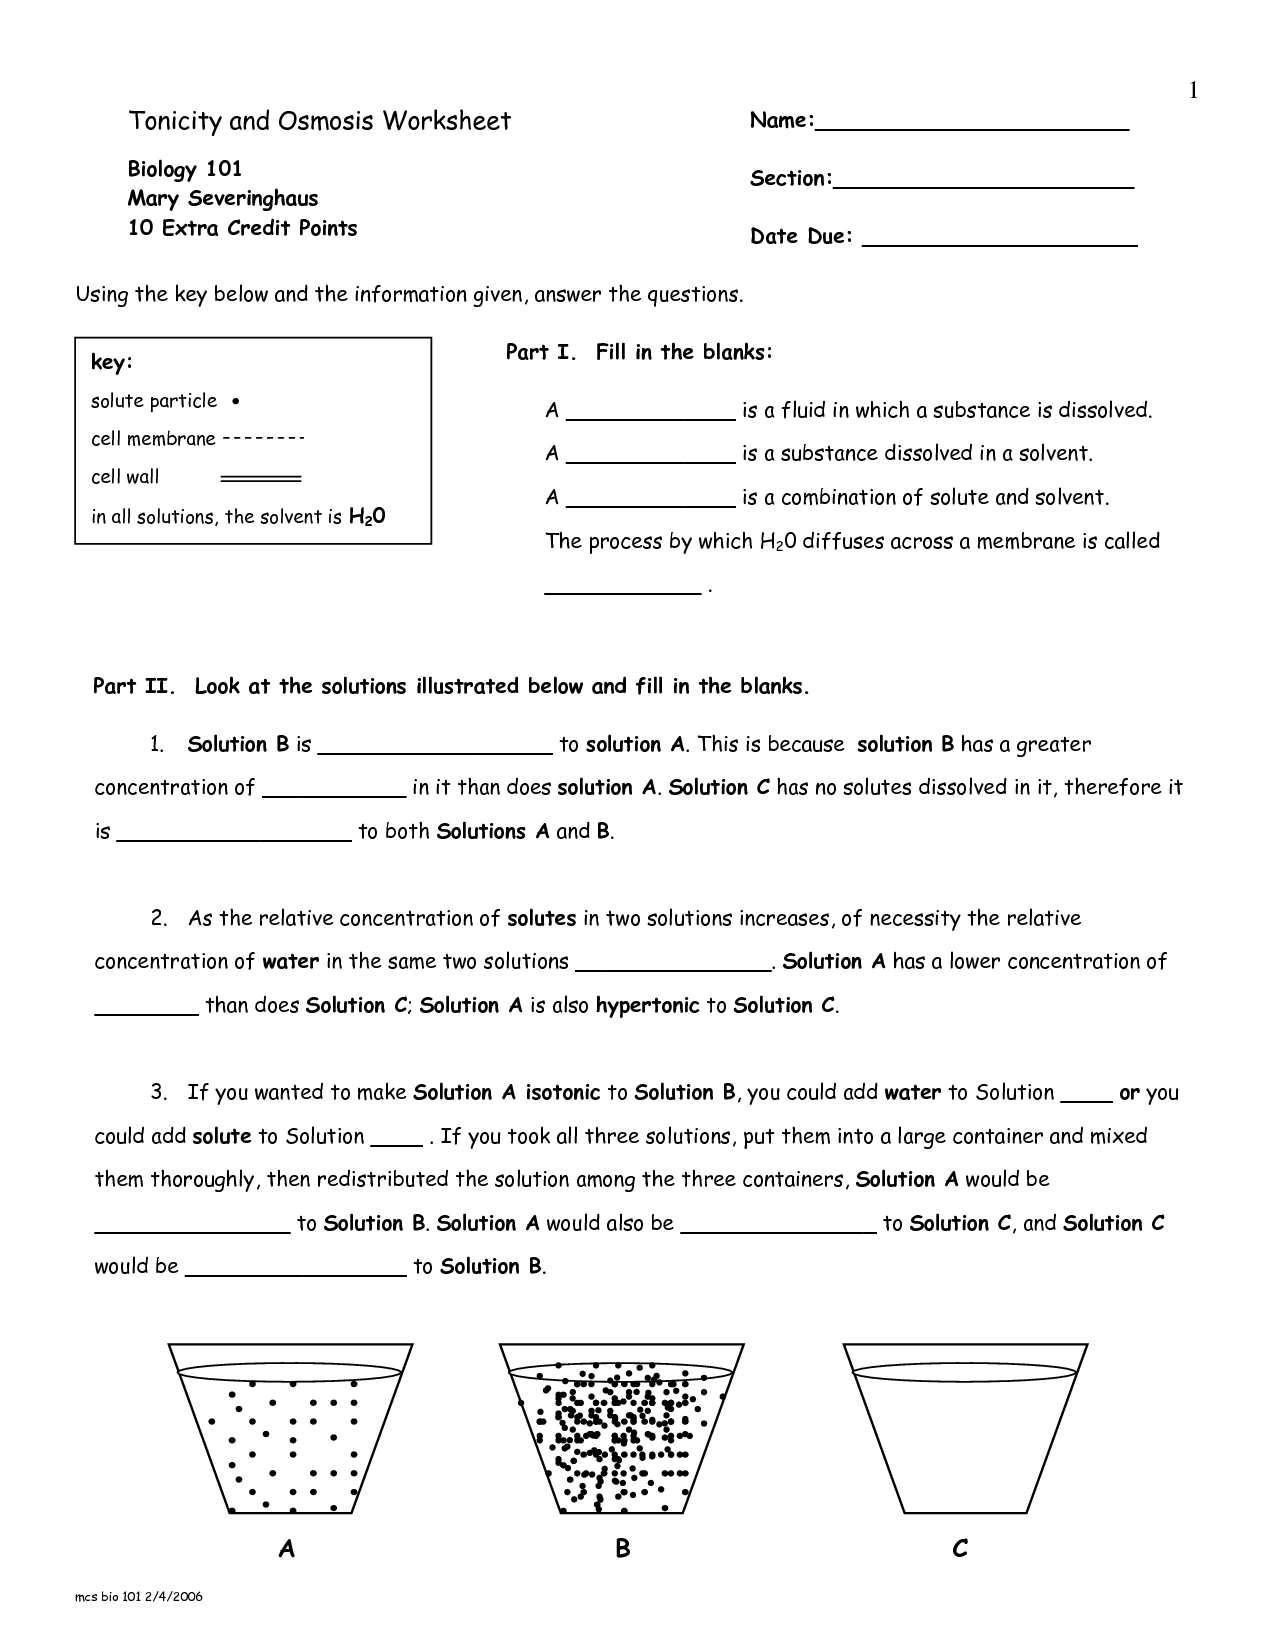 Diffusion And Osmosis Worksheet Answers Biology